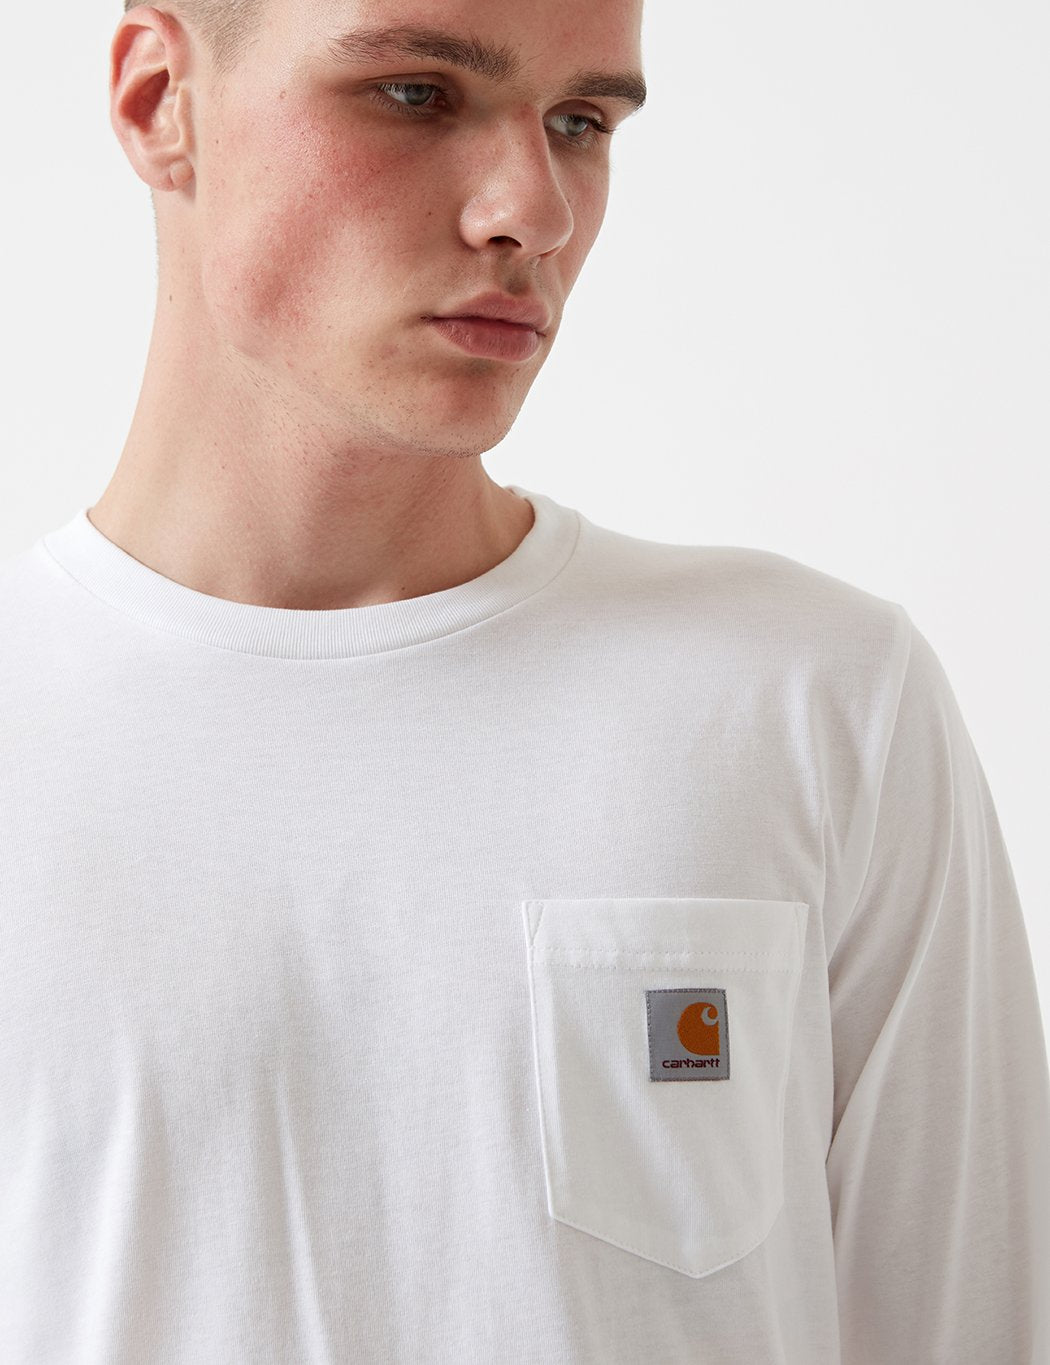 Carhartt Pocket Long Sleeve T-Shirt - White